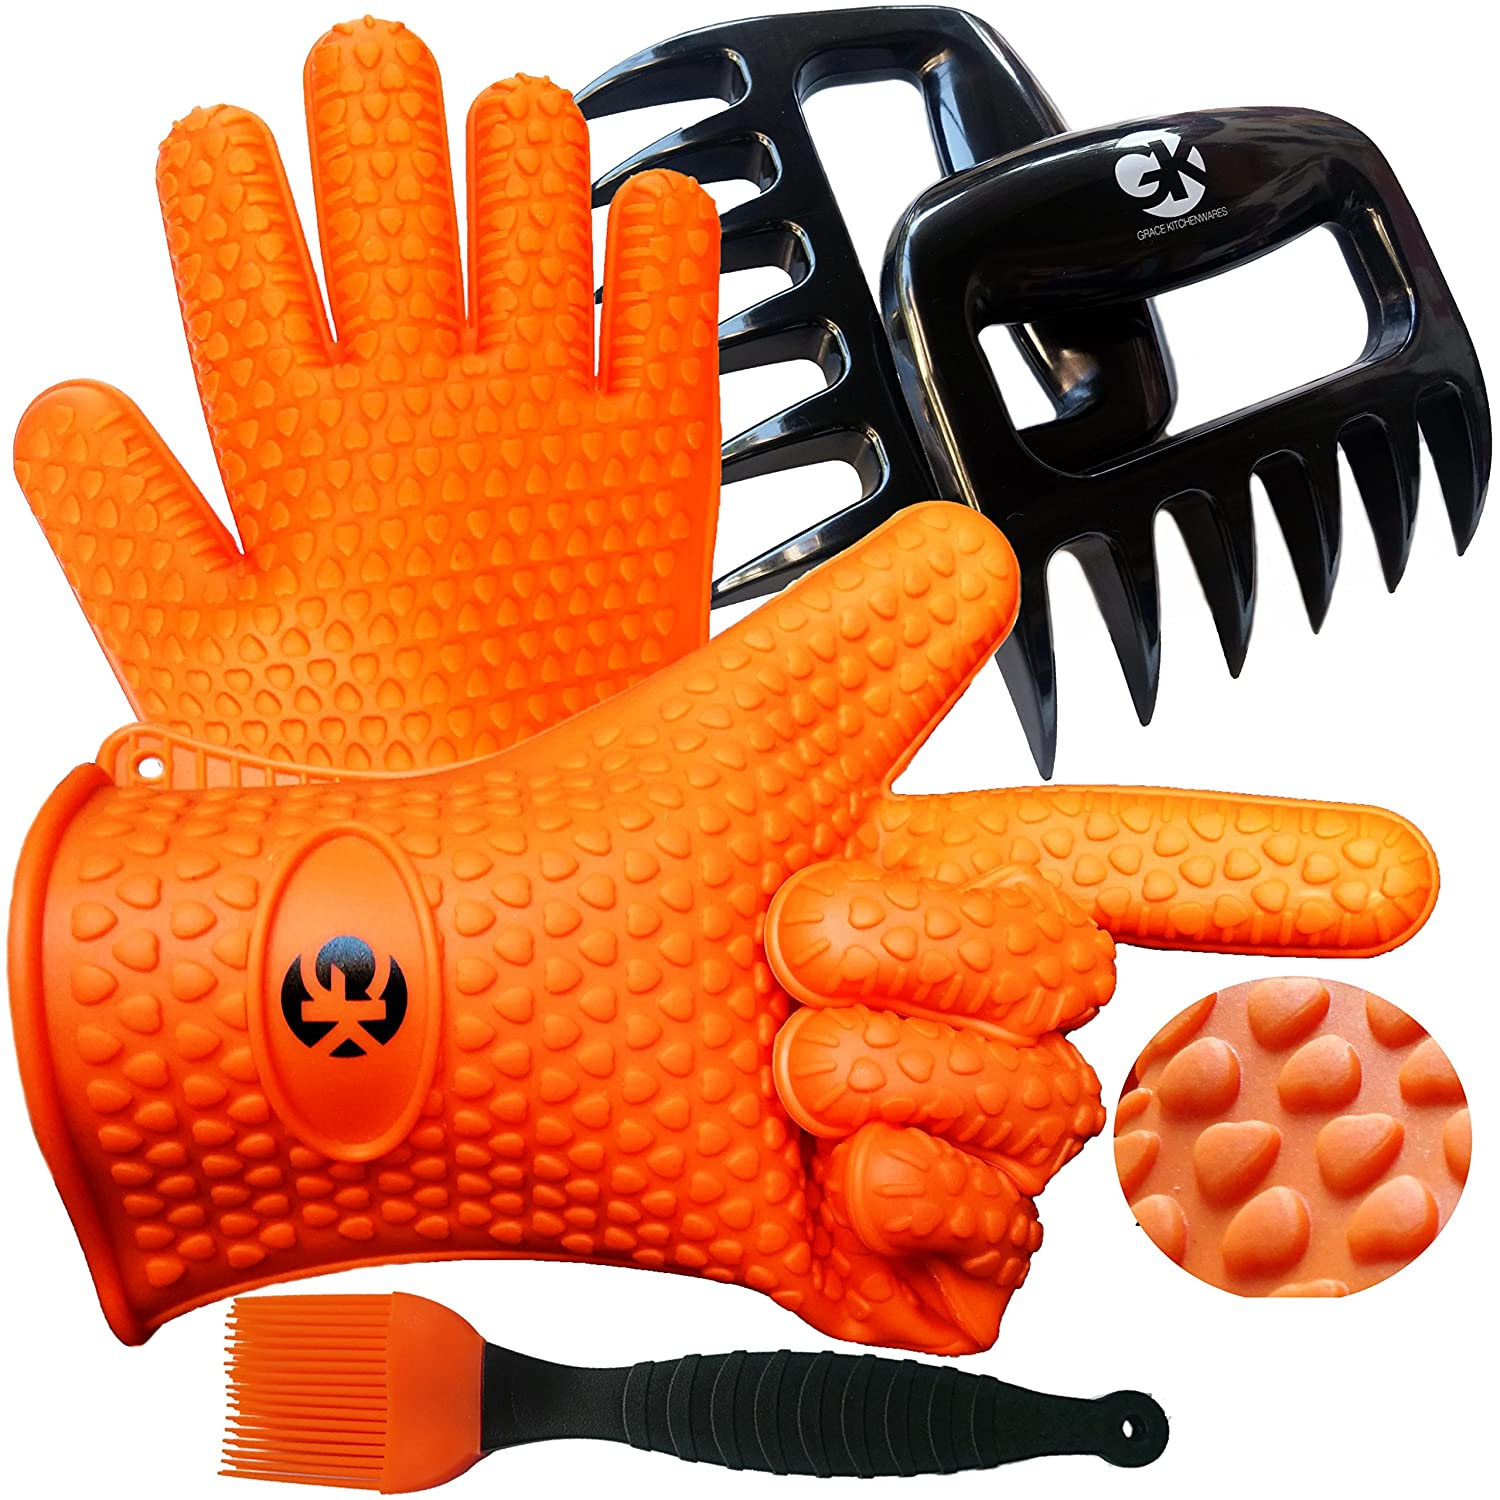 3 x No.1 Set: The No.1 Silicone BBQ /Cooking Gloves Plus The No.1 Meat Shredder Plus No.1 Silicone Baster PLUS eBooks w/ 344 Recipes. Superior Value Premium Set. 100% $ Back Satisfaction Guarantee GK 201